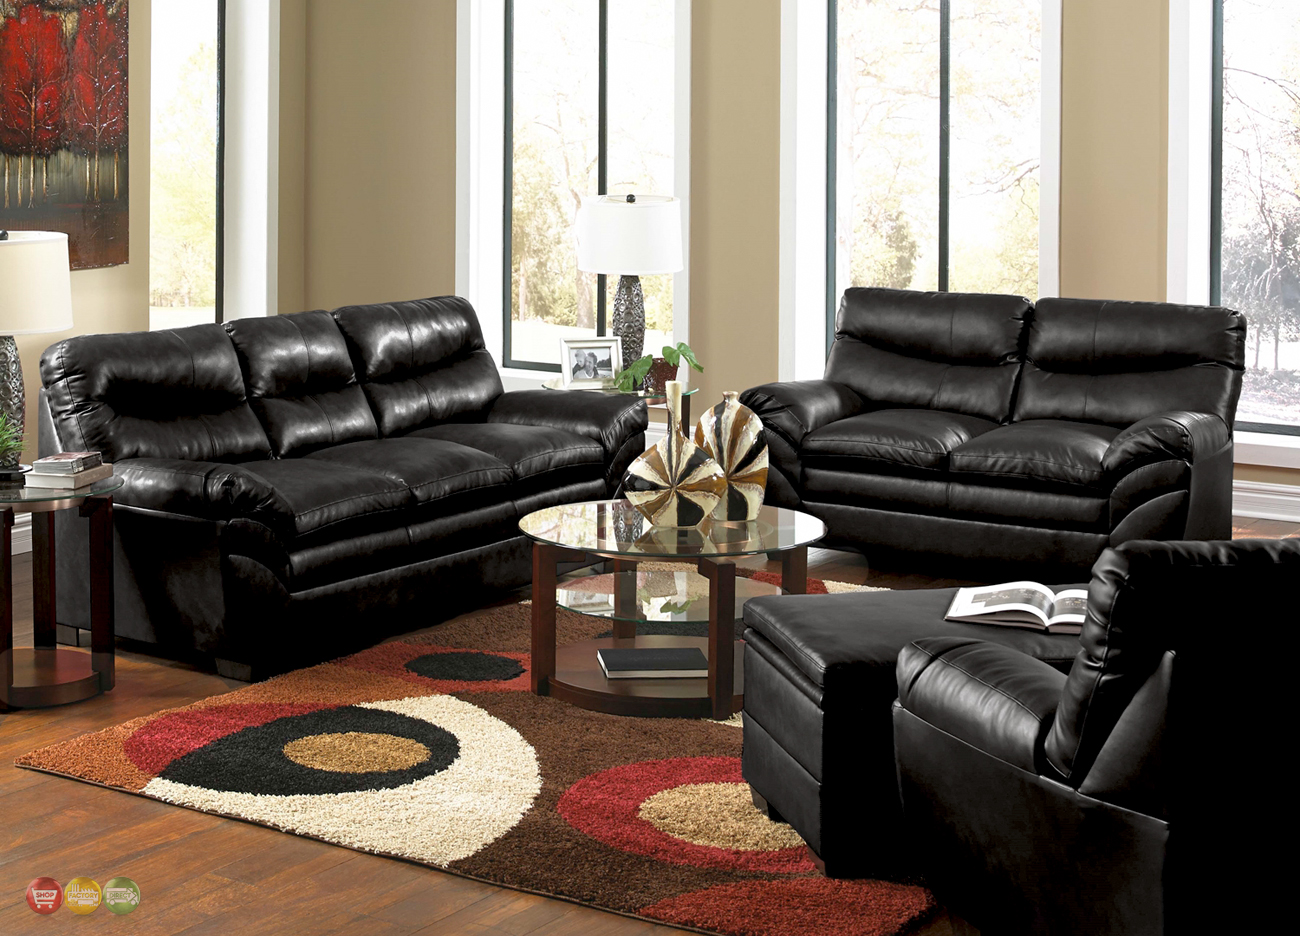 Casual Contemporary Black Bonded Leather Sofa Set Living Room Furniture